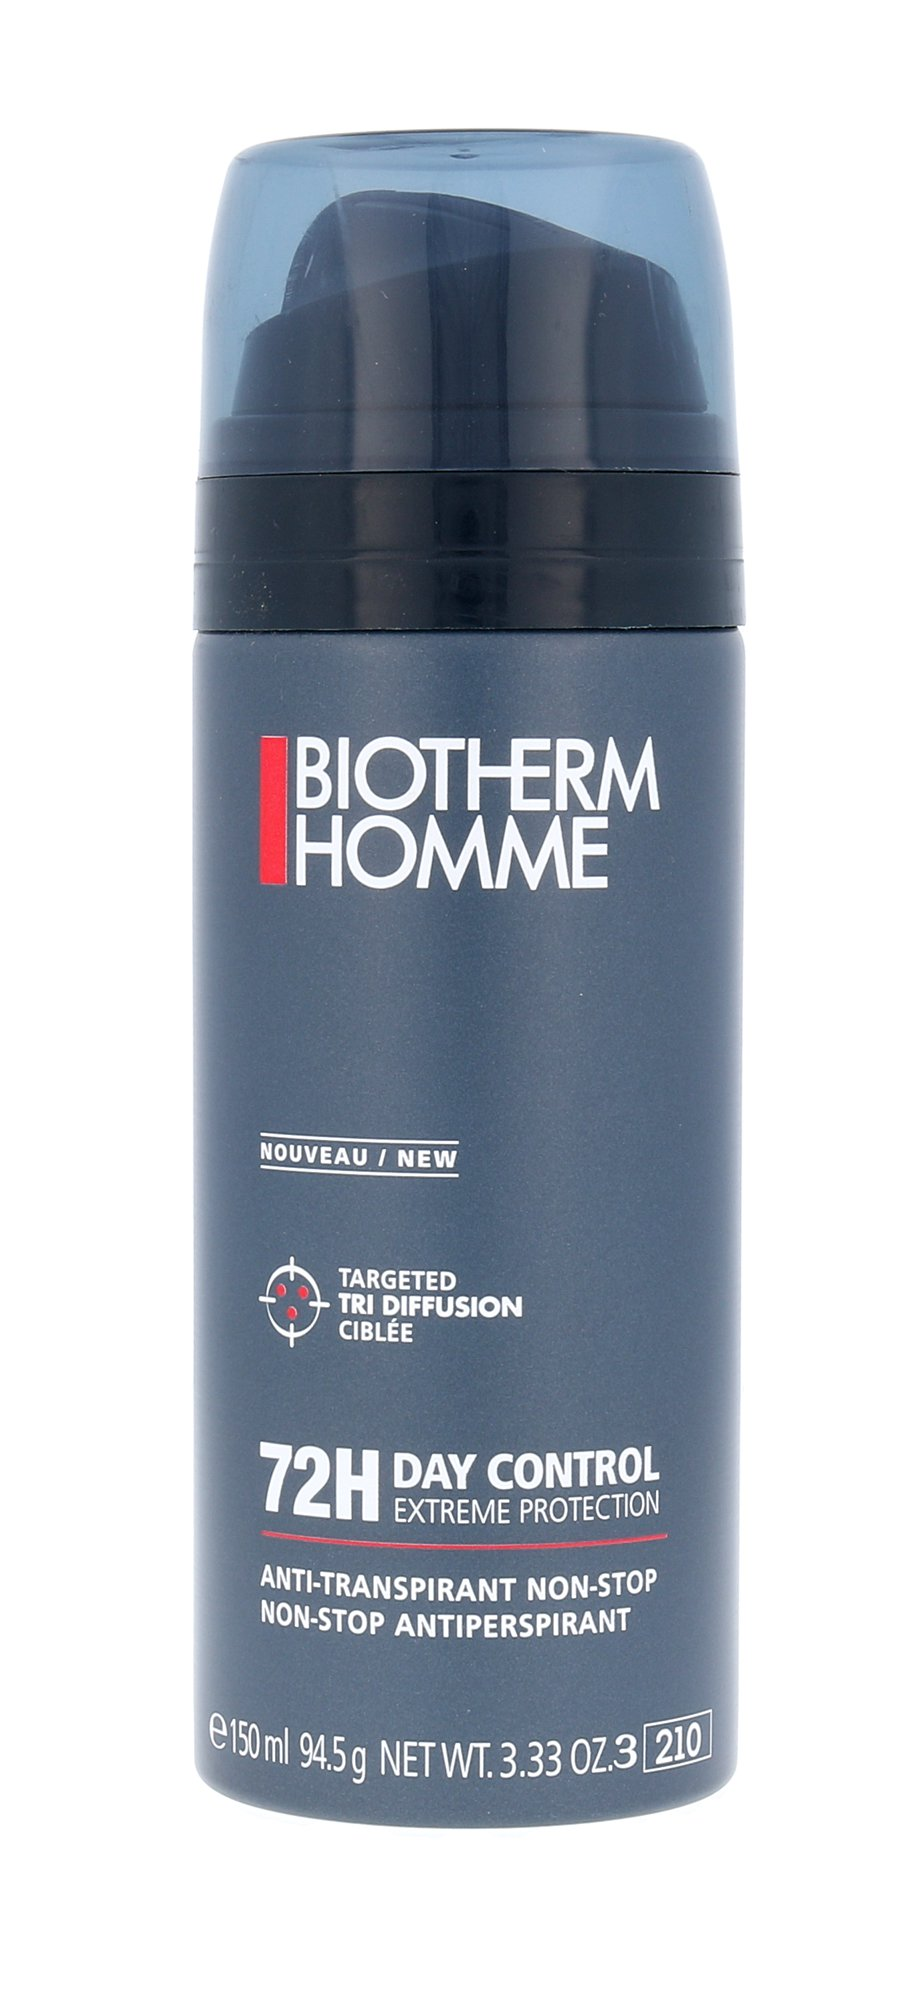 Biotherm Homme Day Control 72H, dezodor 150ml, Extreme Protection